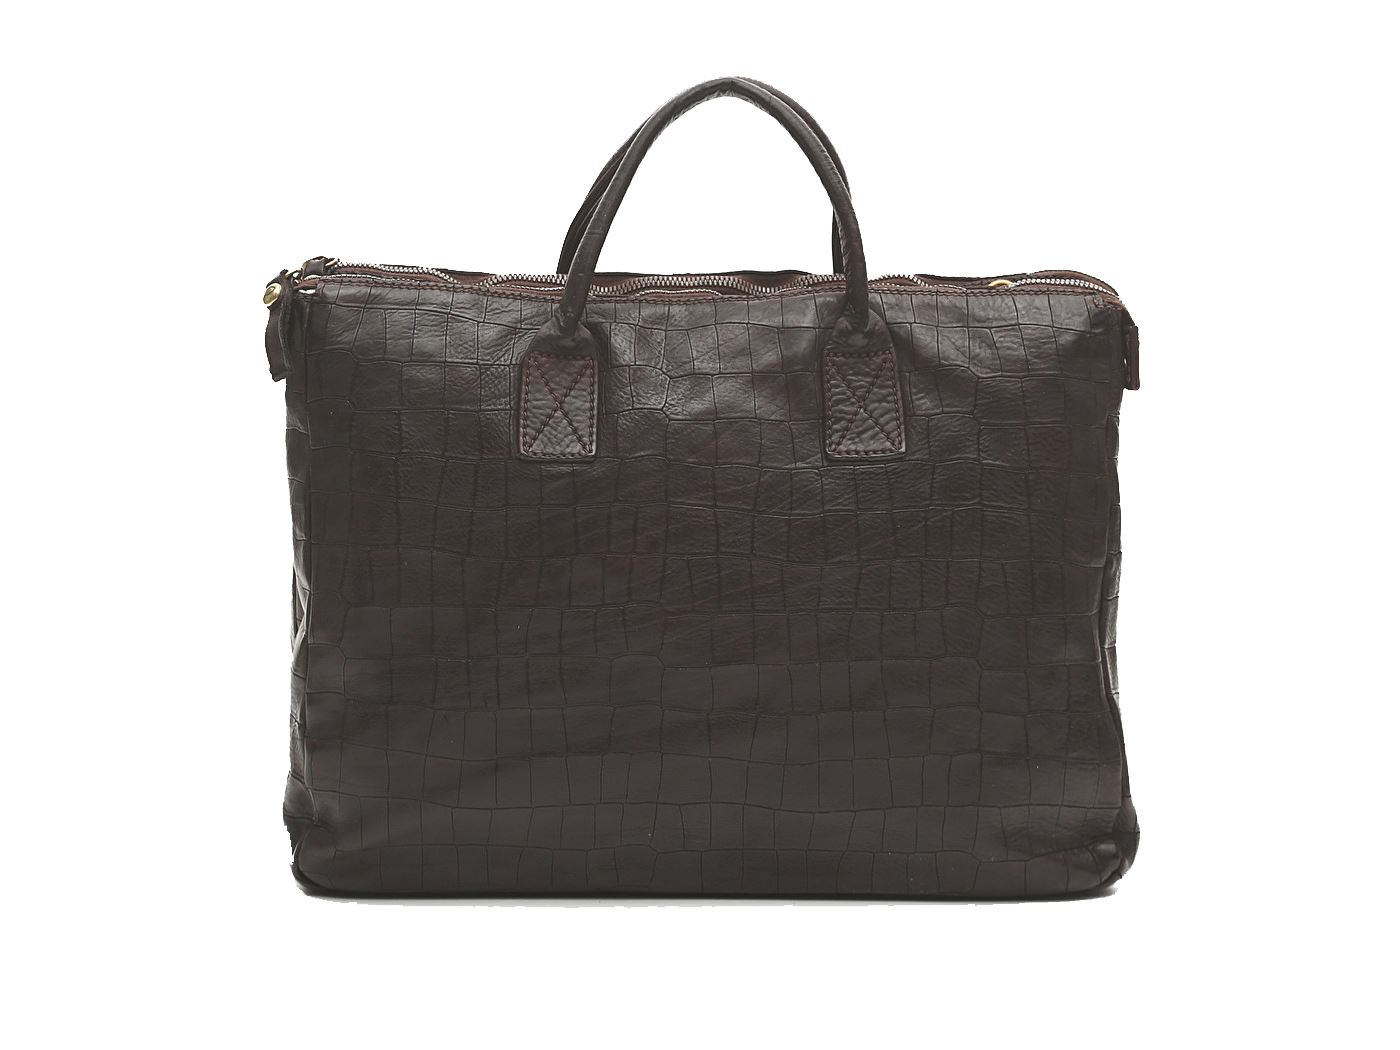 CAMPOMAGGI C018670ND X0798 C1501 BORSA IN PELLE MARRONE